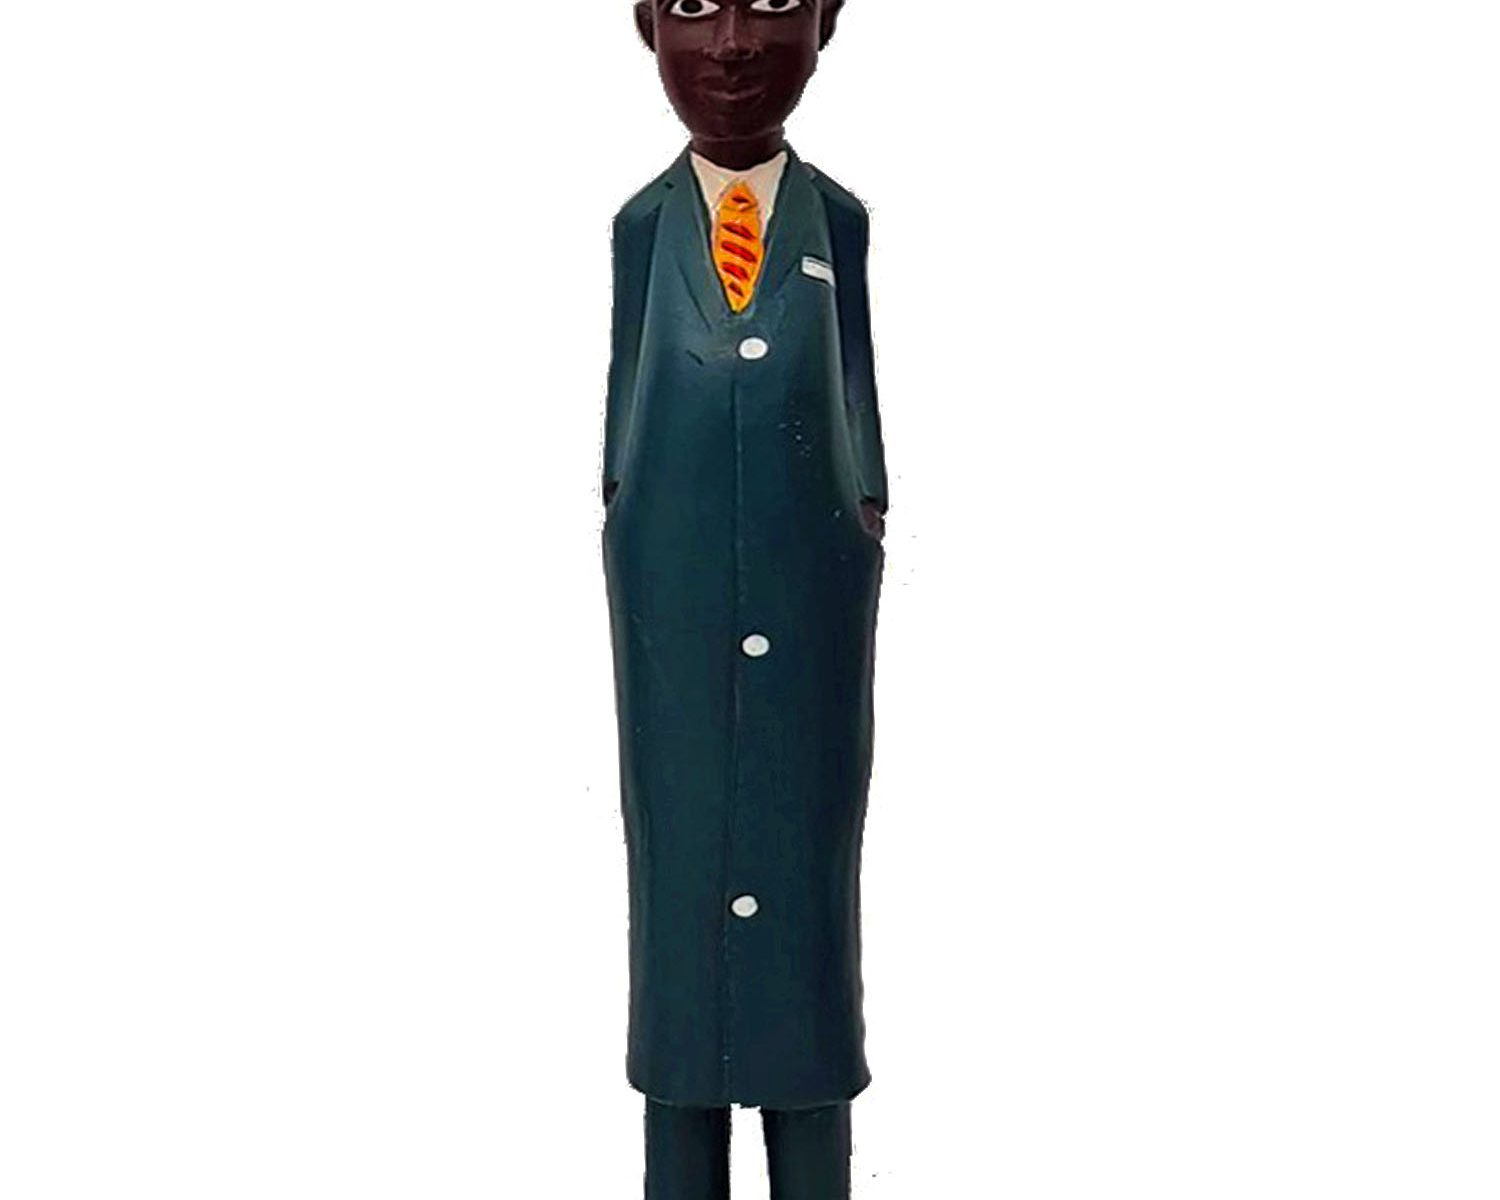 African Colonial Figure Business Man